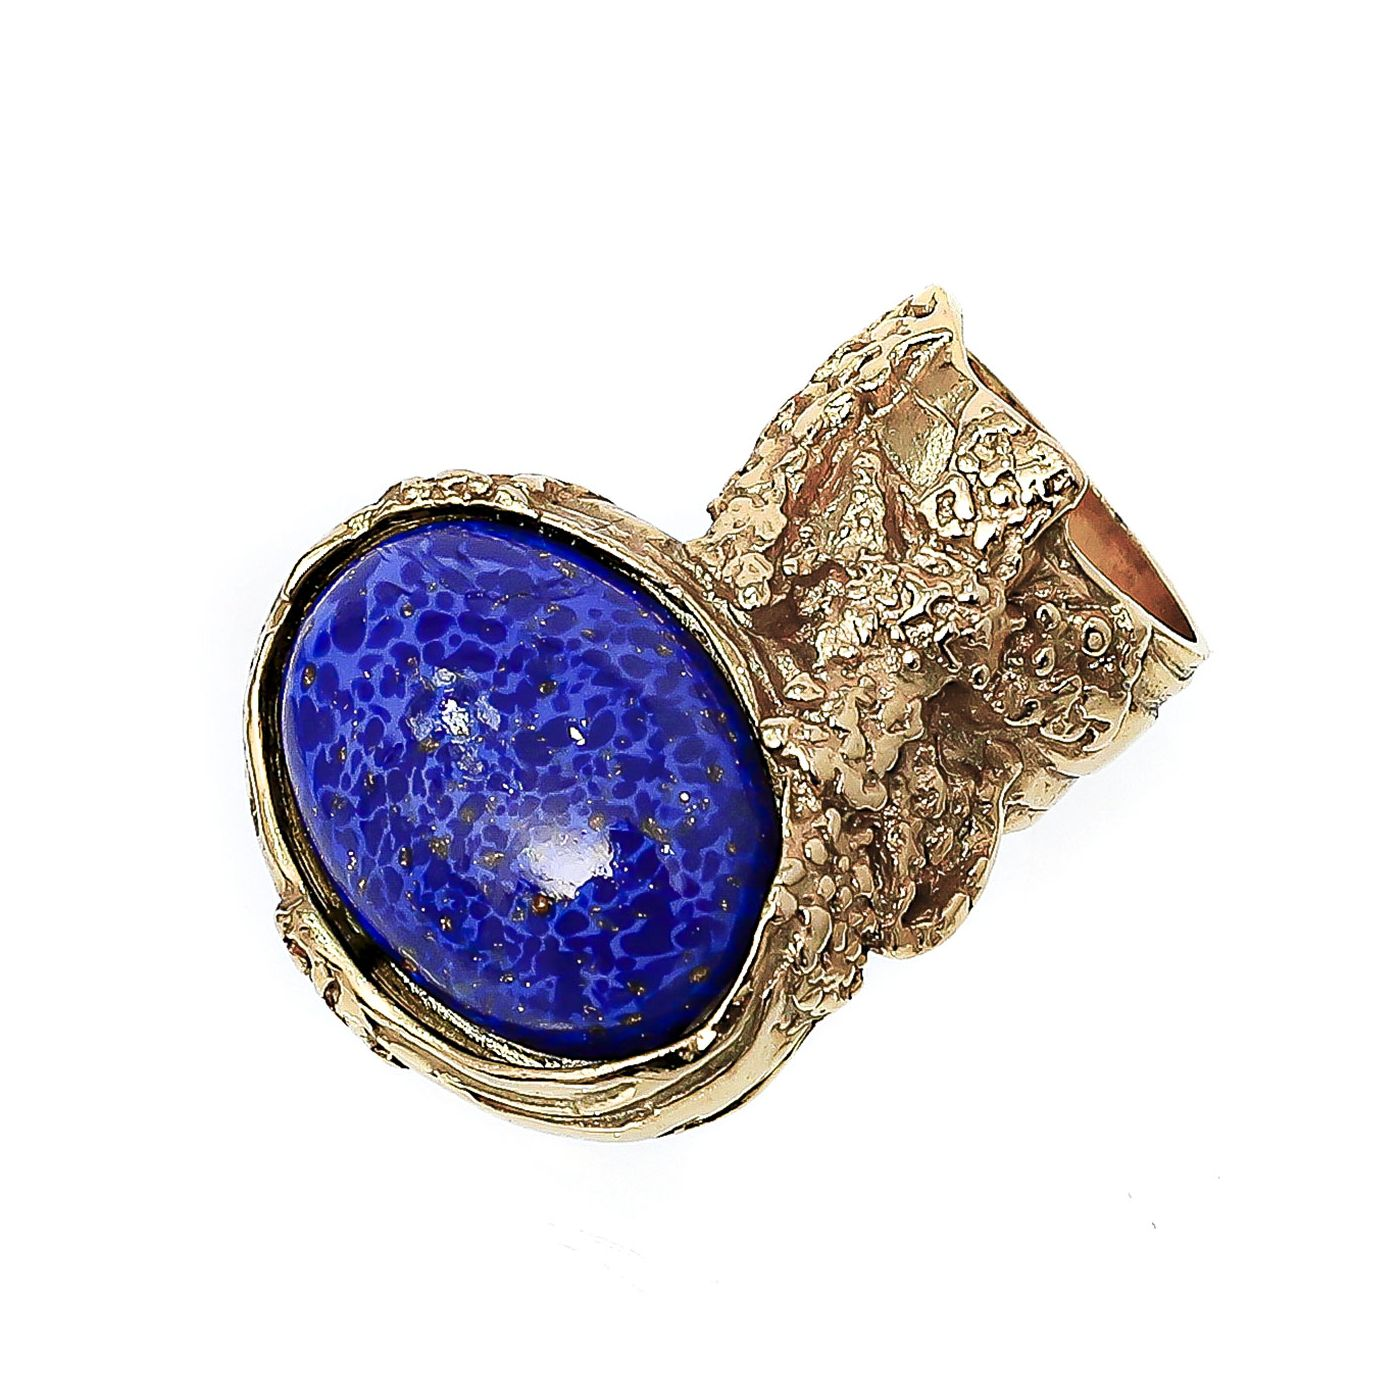 YSL Blue Iconic Arty Ring 6